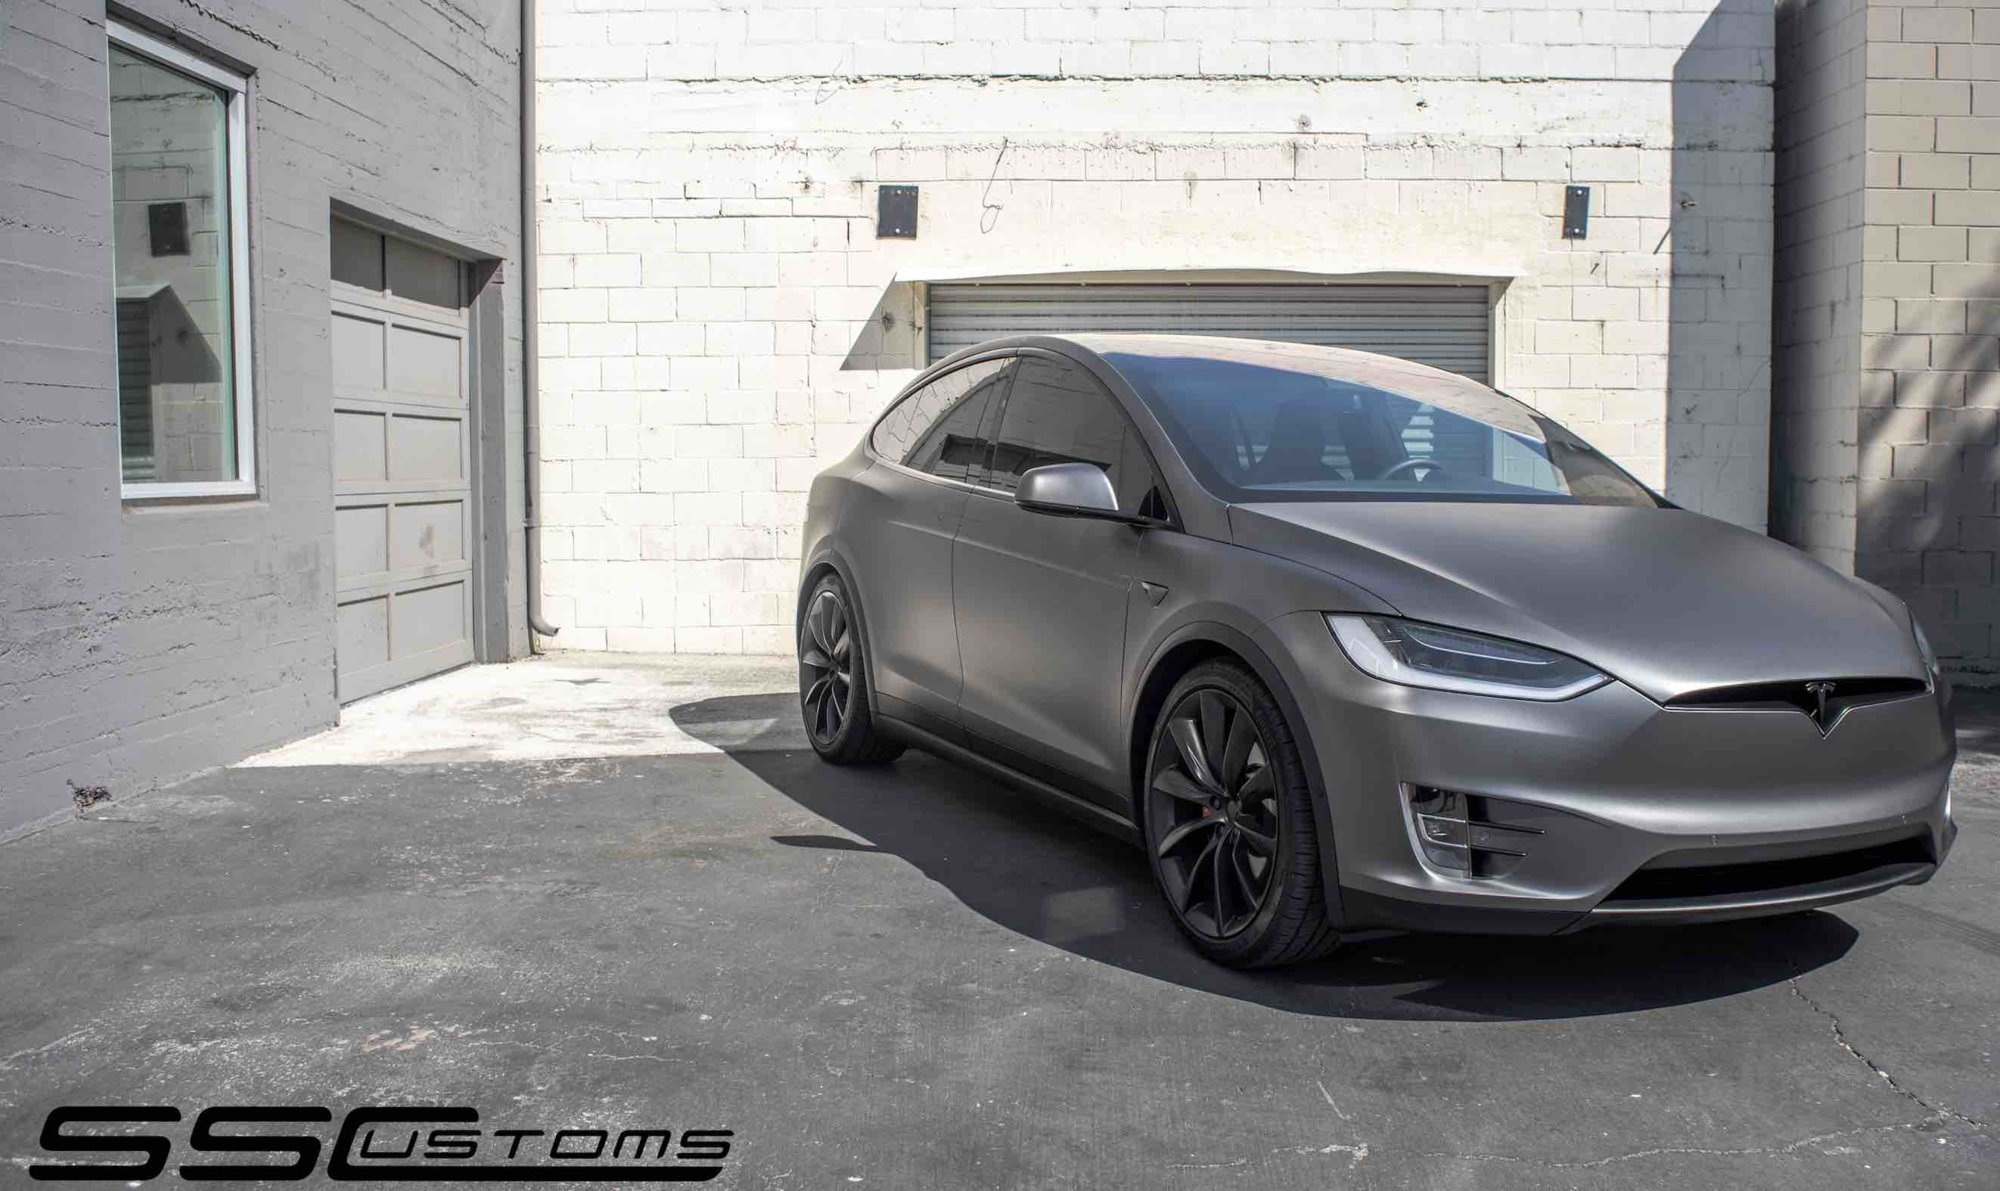 sscustoms model x low.jpg